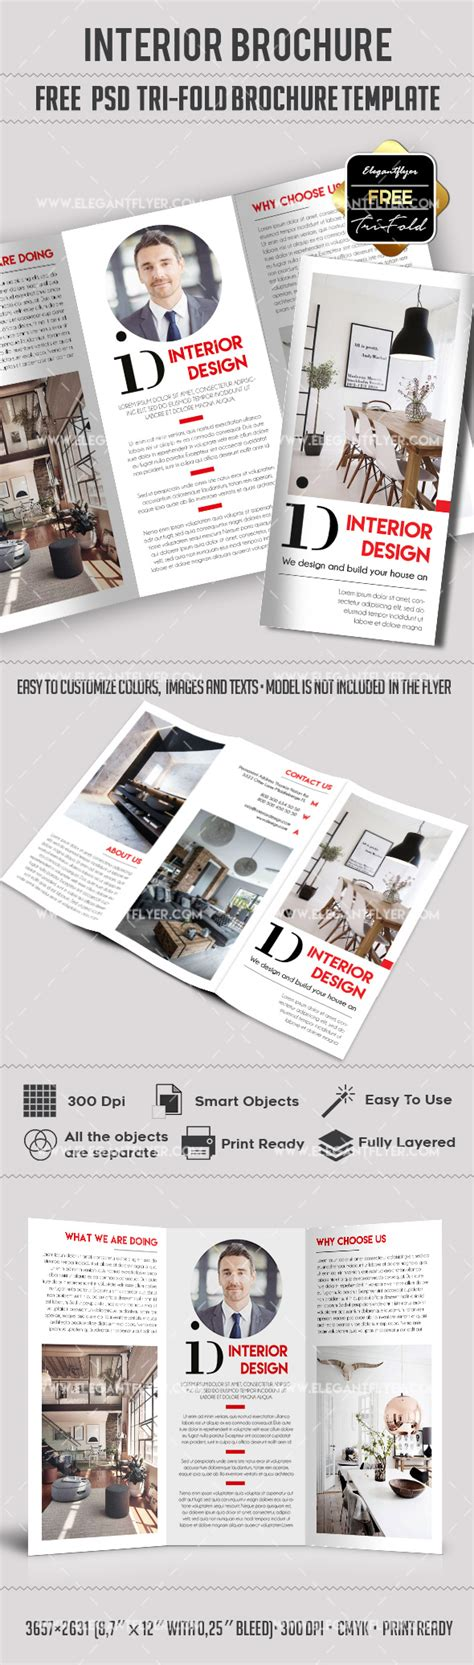 design templates for brochures photoshop download interior design free psd tri fold psd brochure